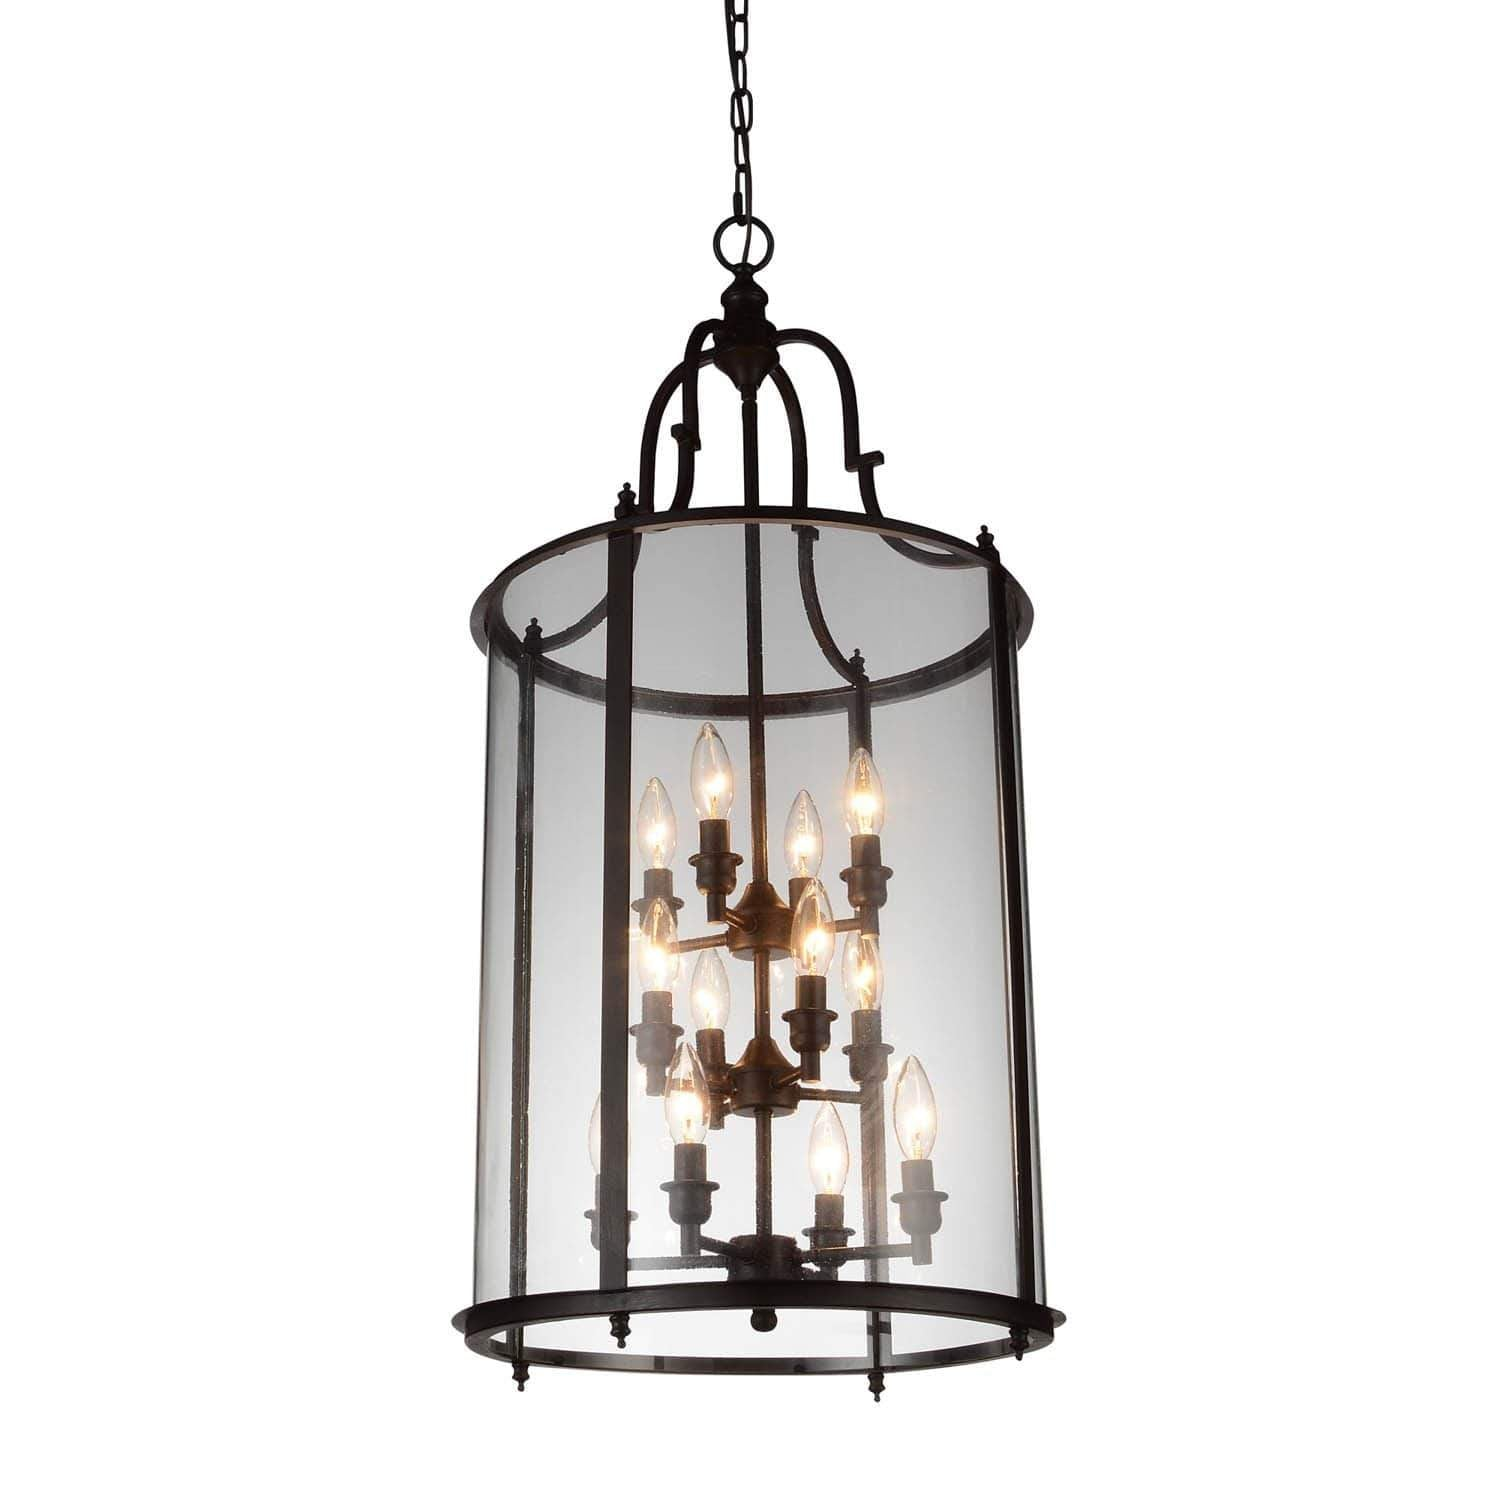 CWI Lighting Chandeliers Oil Rubbed Bronze Desire 12 Light Drum Shade Chandelier with Oil Rubbed Bronze finish by CWI Lighting 9809P17-12-109-A